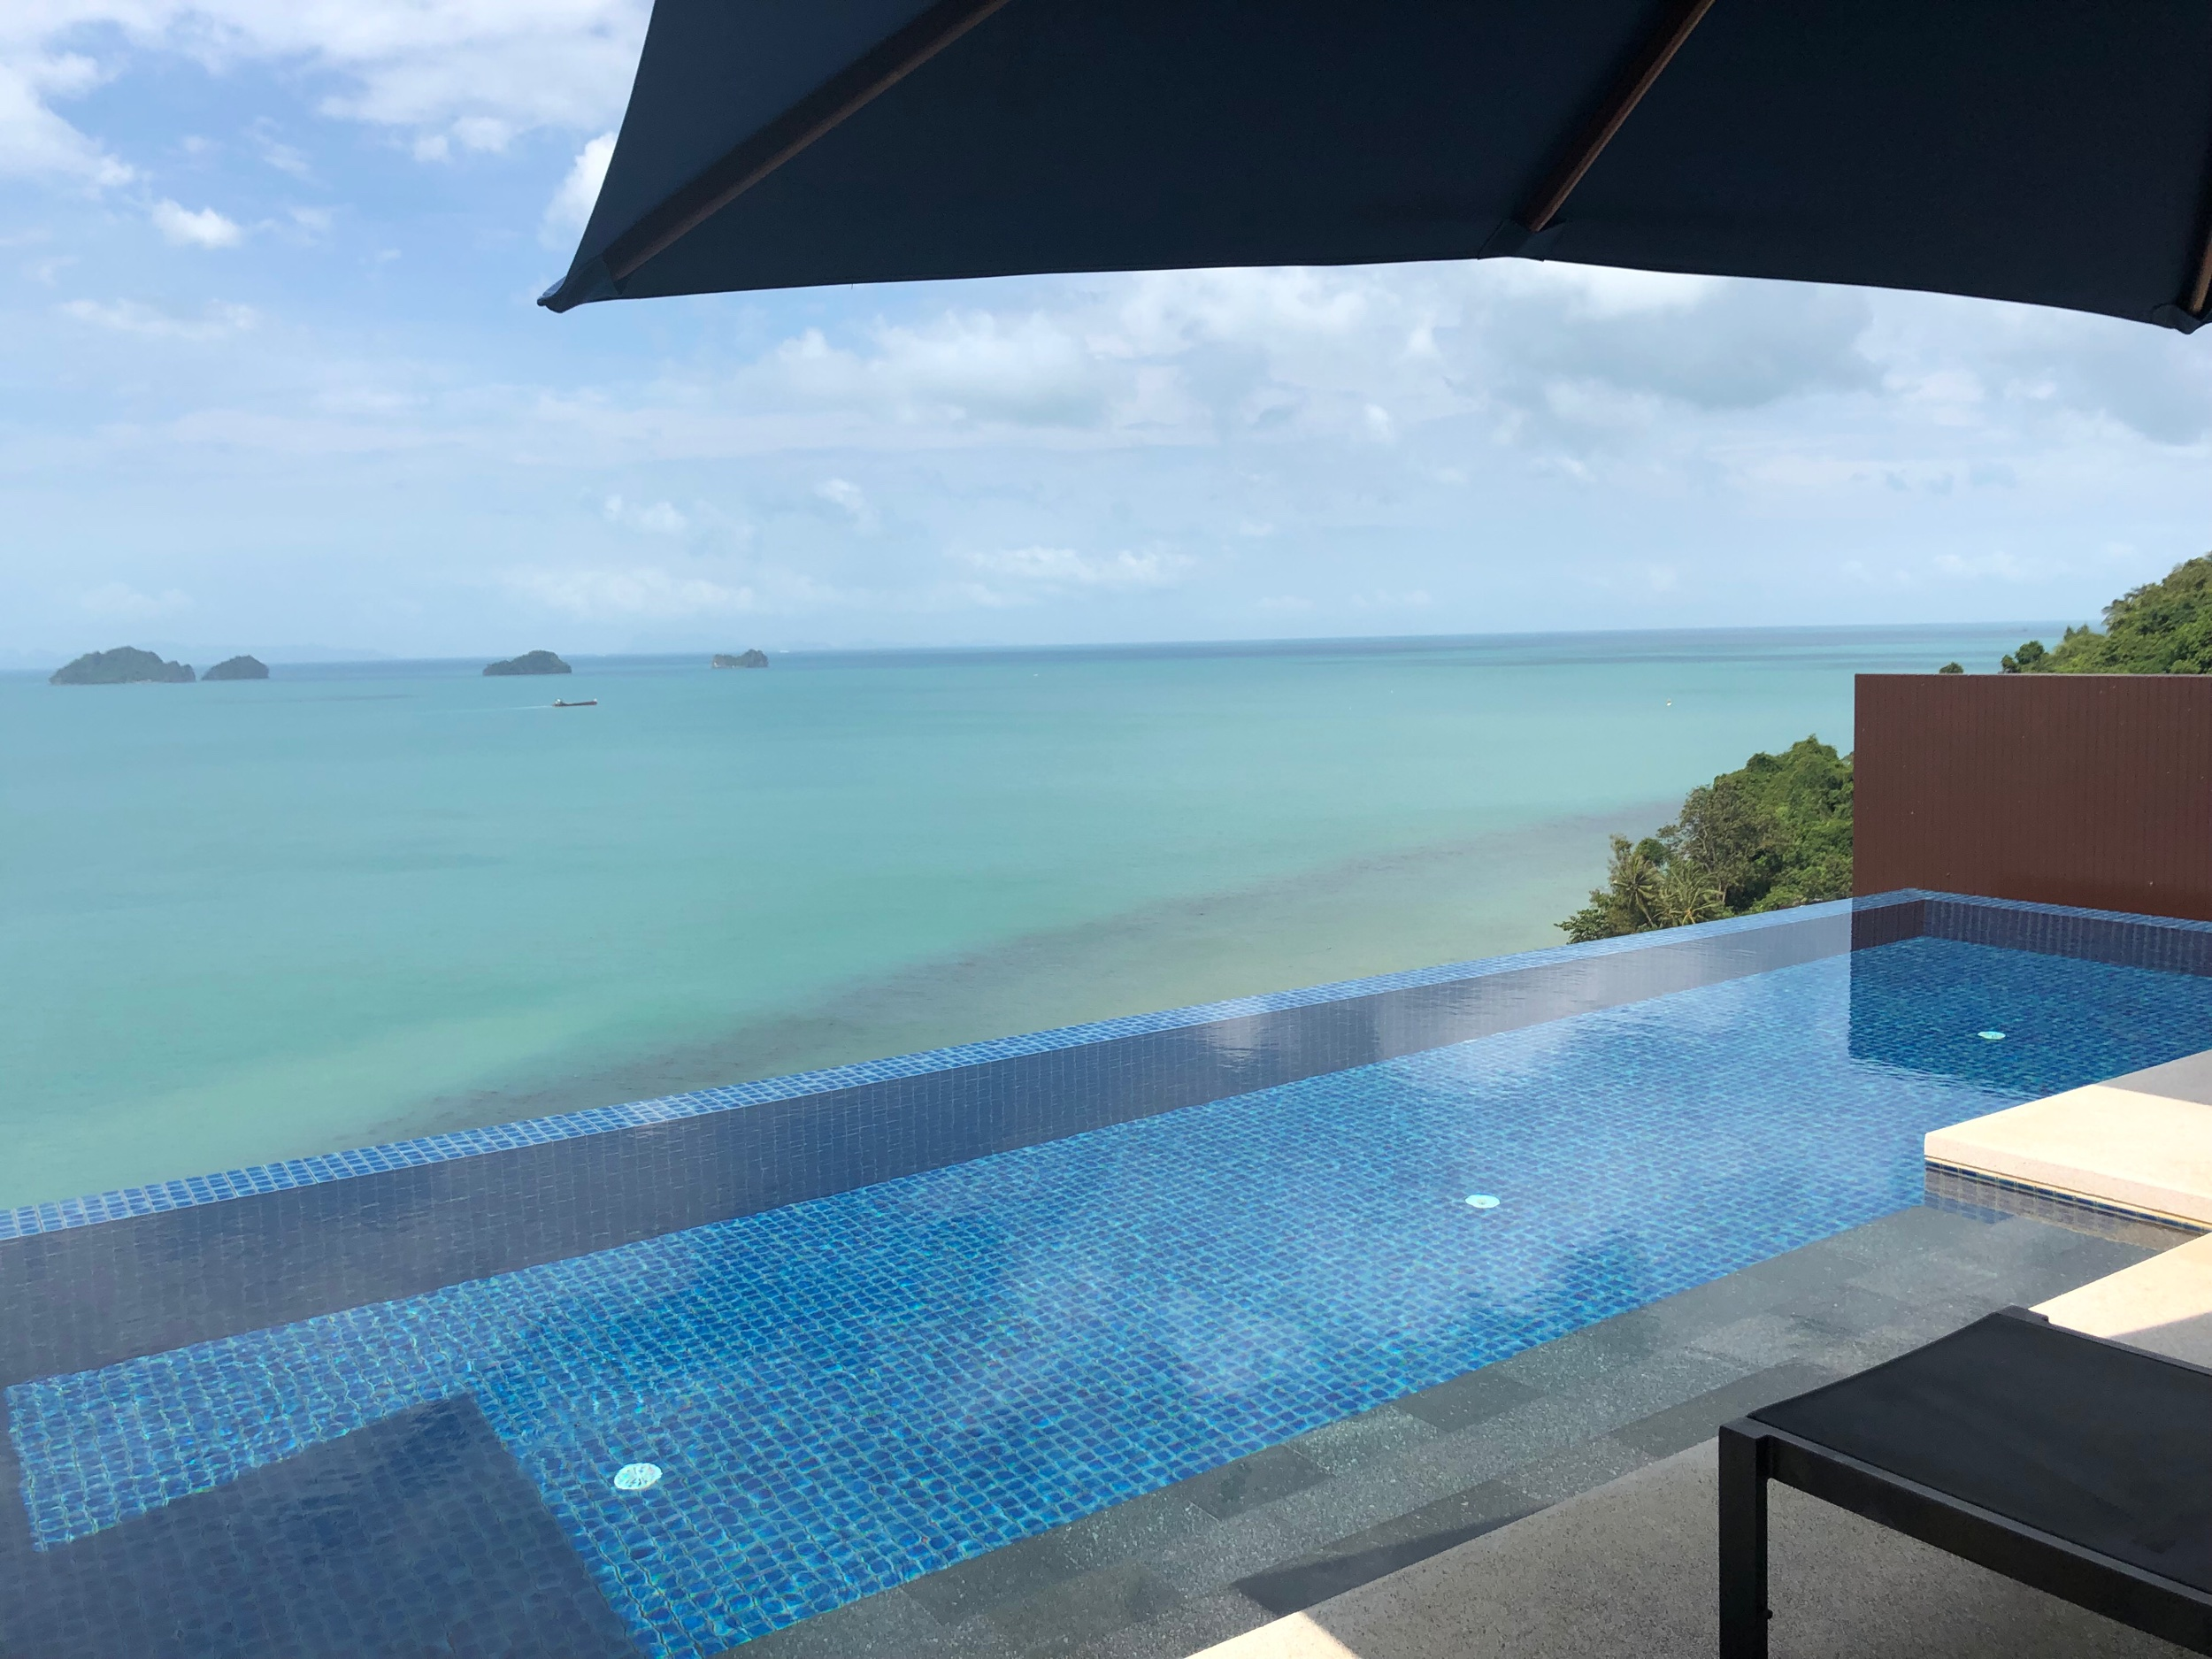 View from one of my stays at a Hilton aspirational property, Conrad Koh Samui.